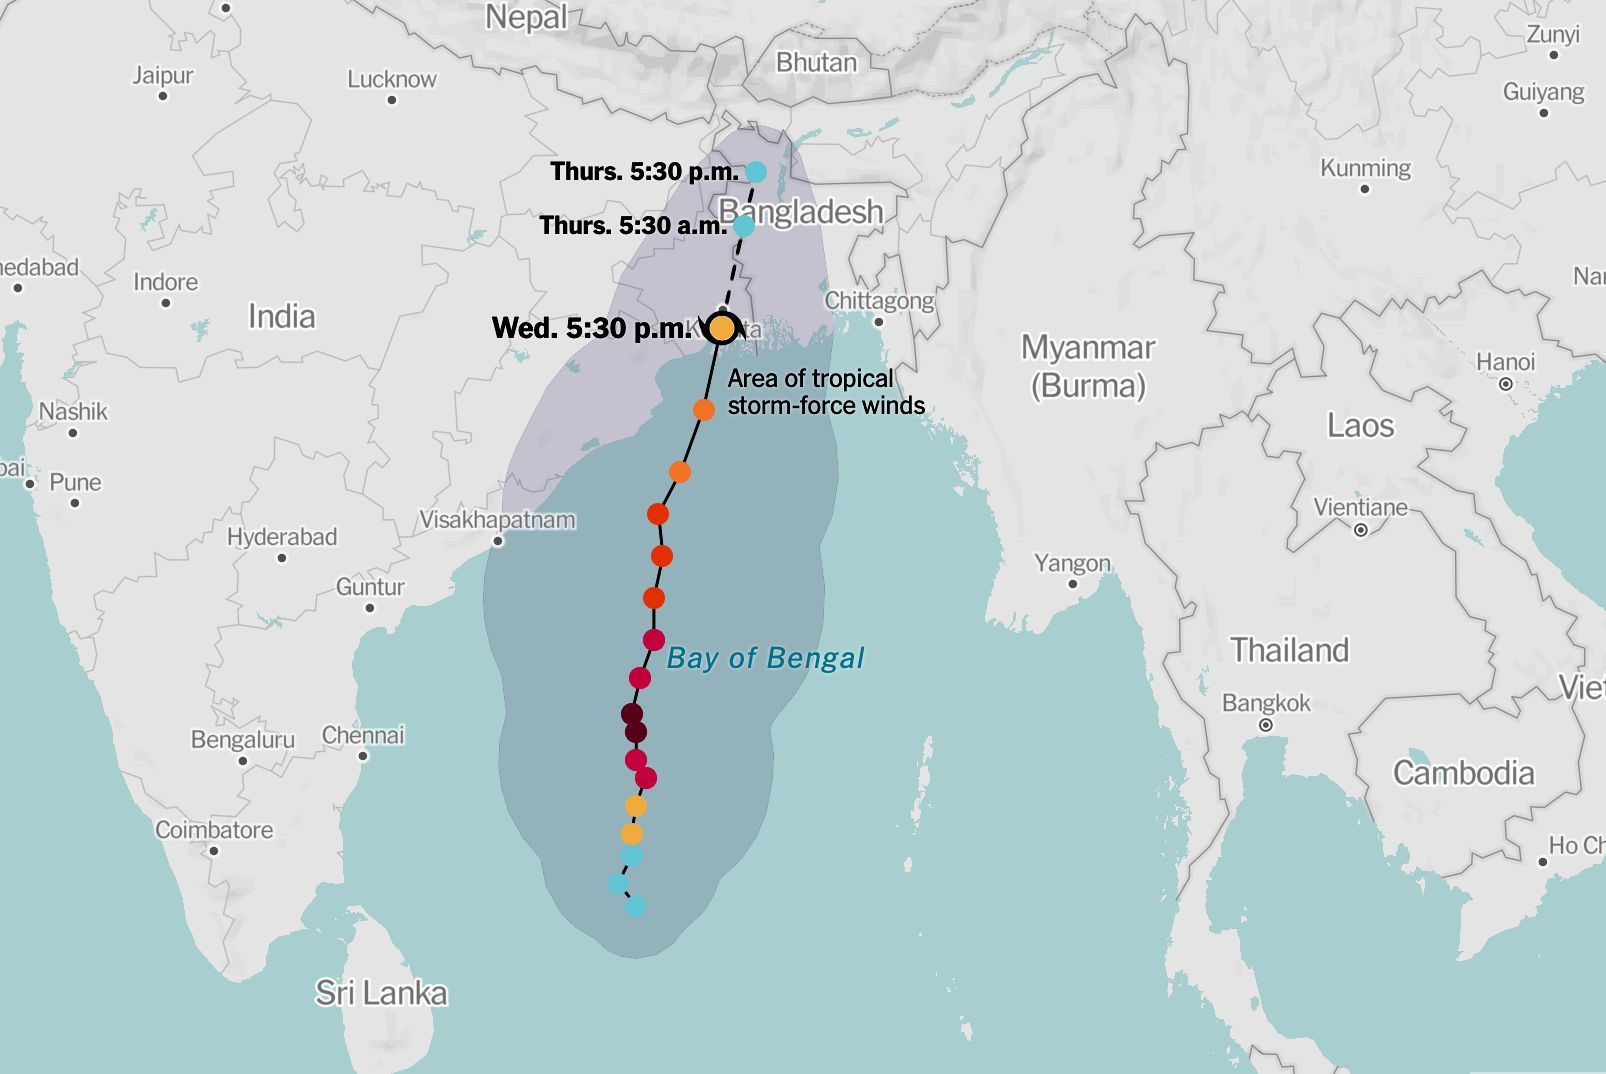 Cyclone Amphan: Crossed the coast and now saturating India and Bangladesh | News by Thaiger